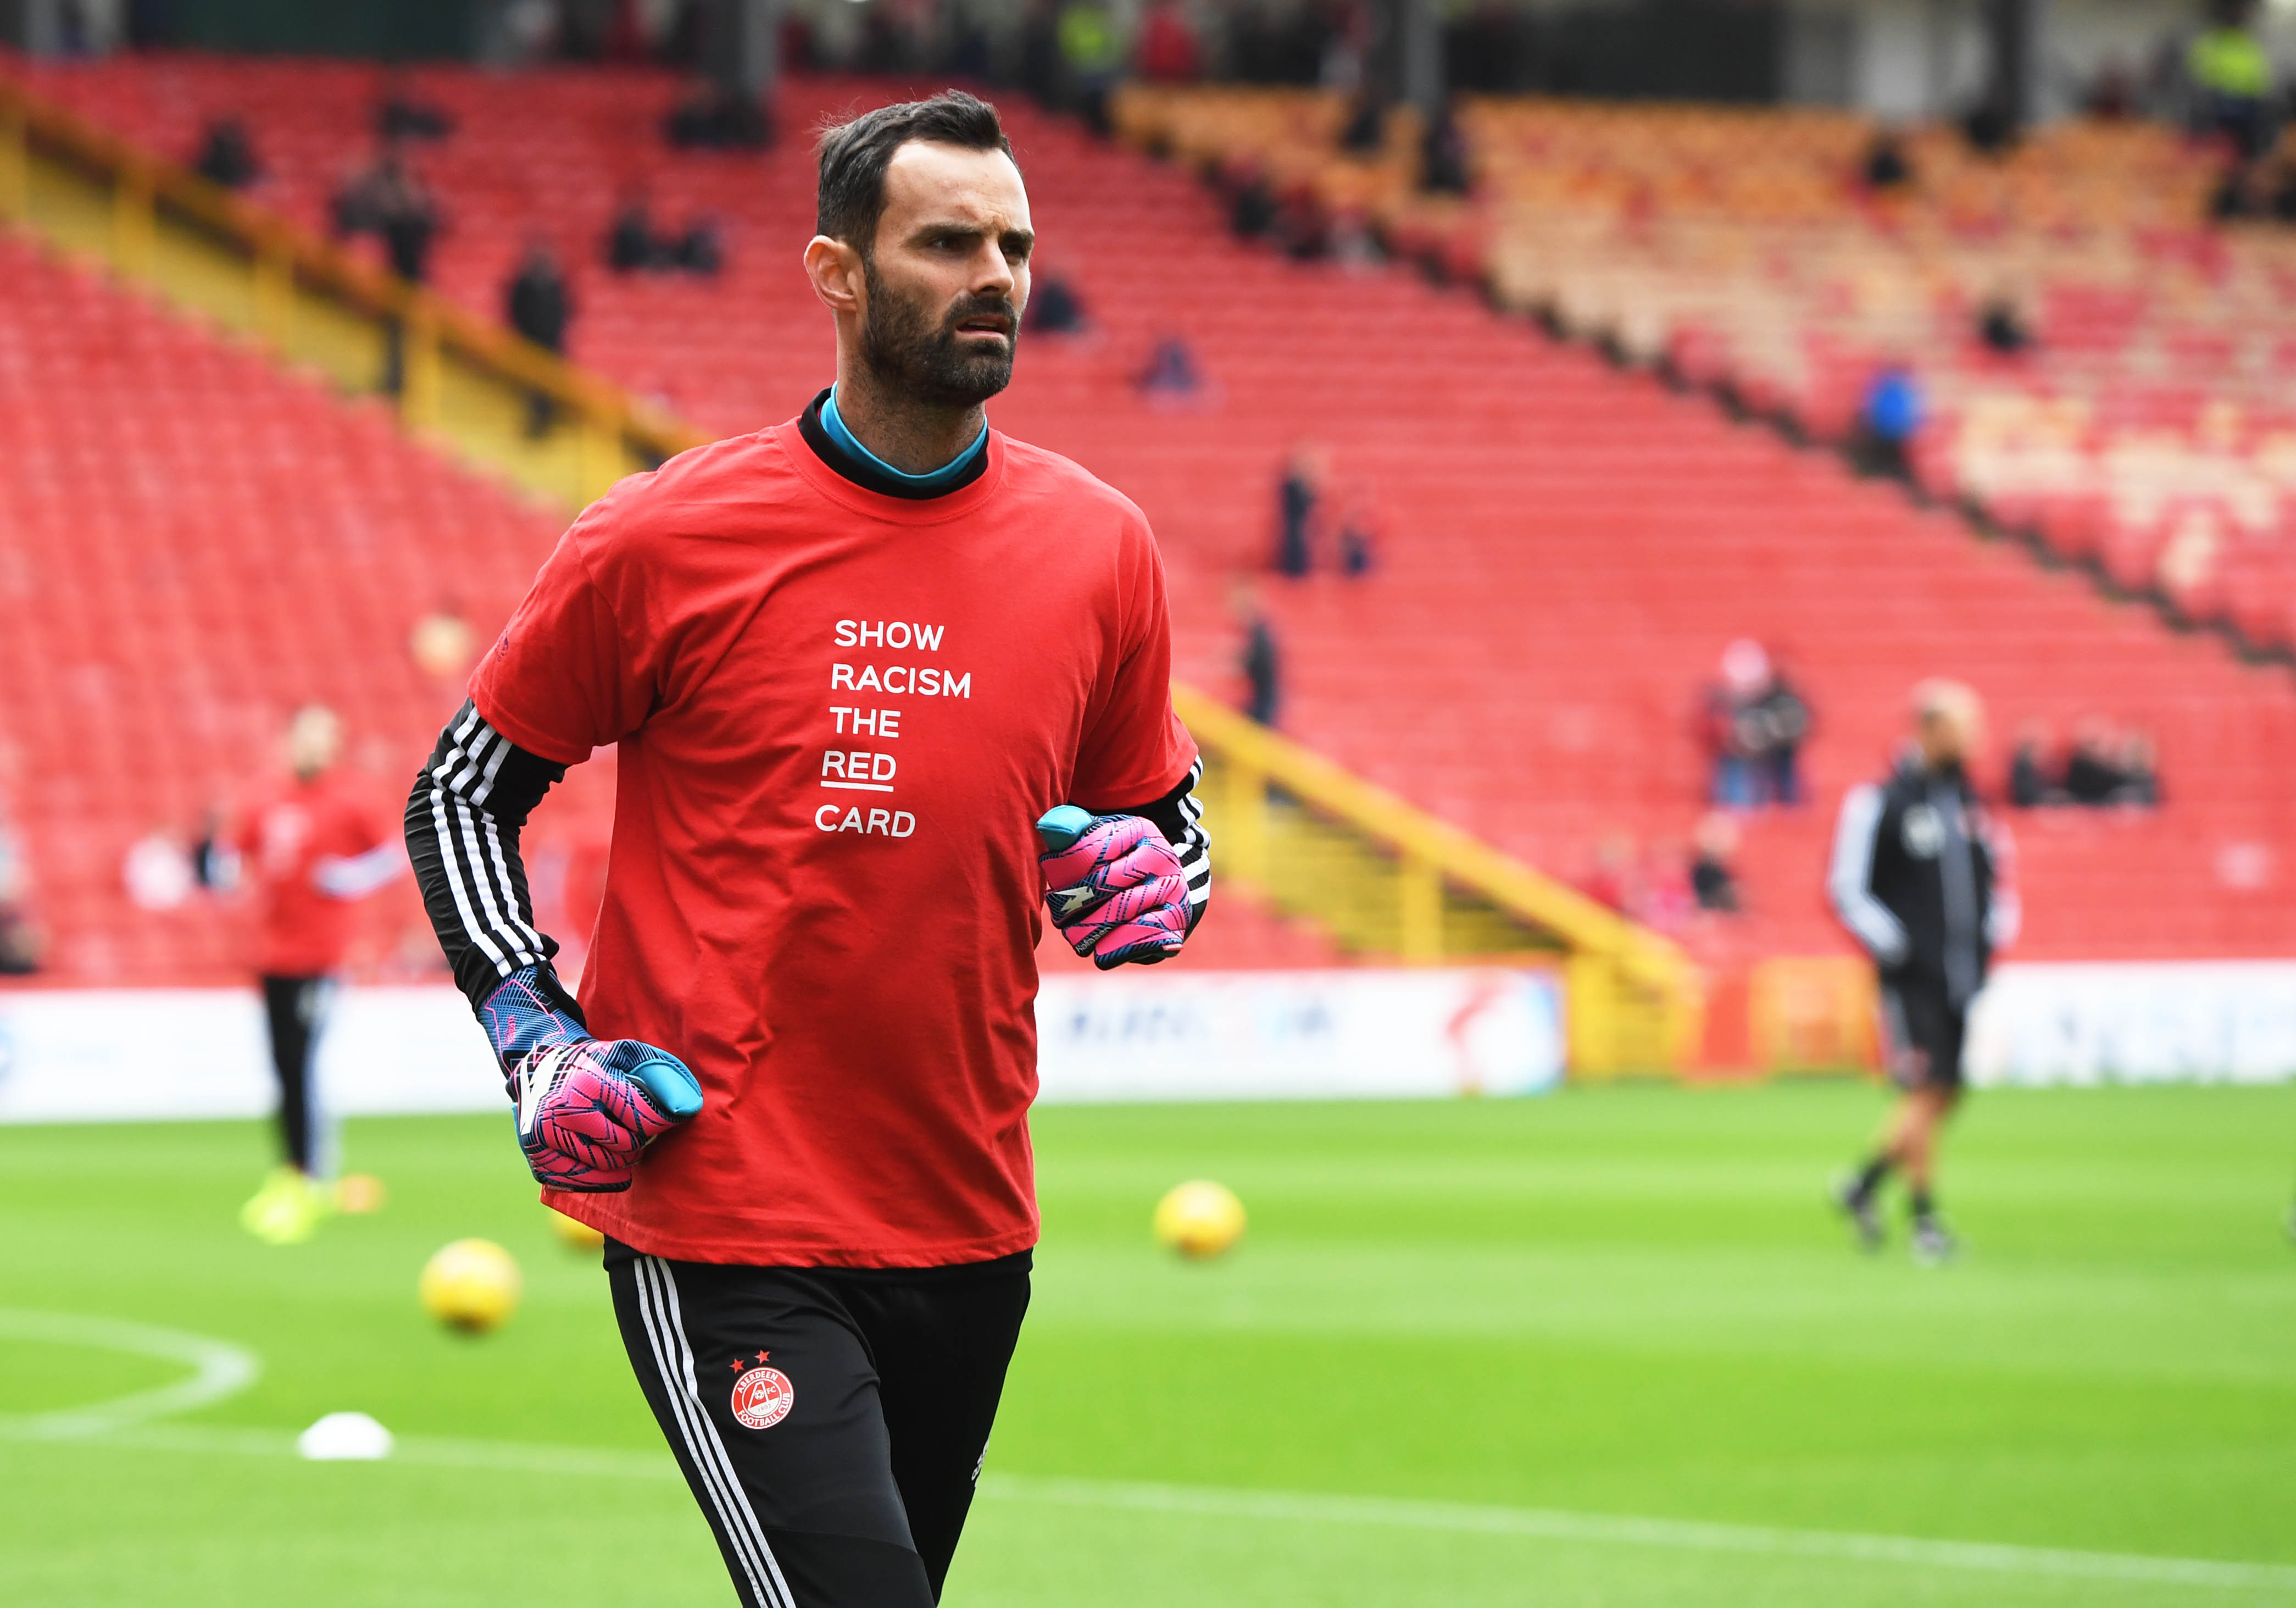 Aberdeen's Joe Lewis in the warm up ahead of the Ladbrokes Premiership match between Aberdeen and Hibernian at Pittodrie Stadium.